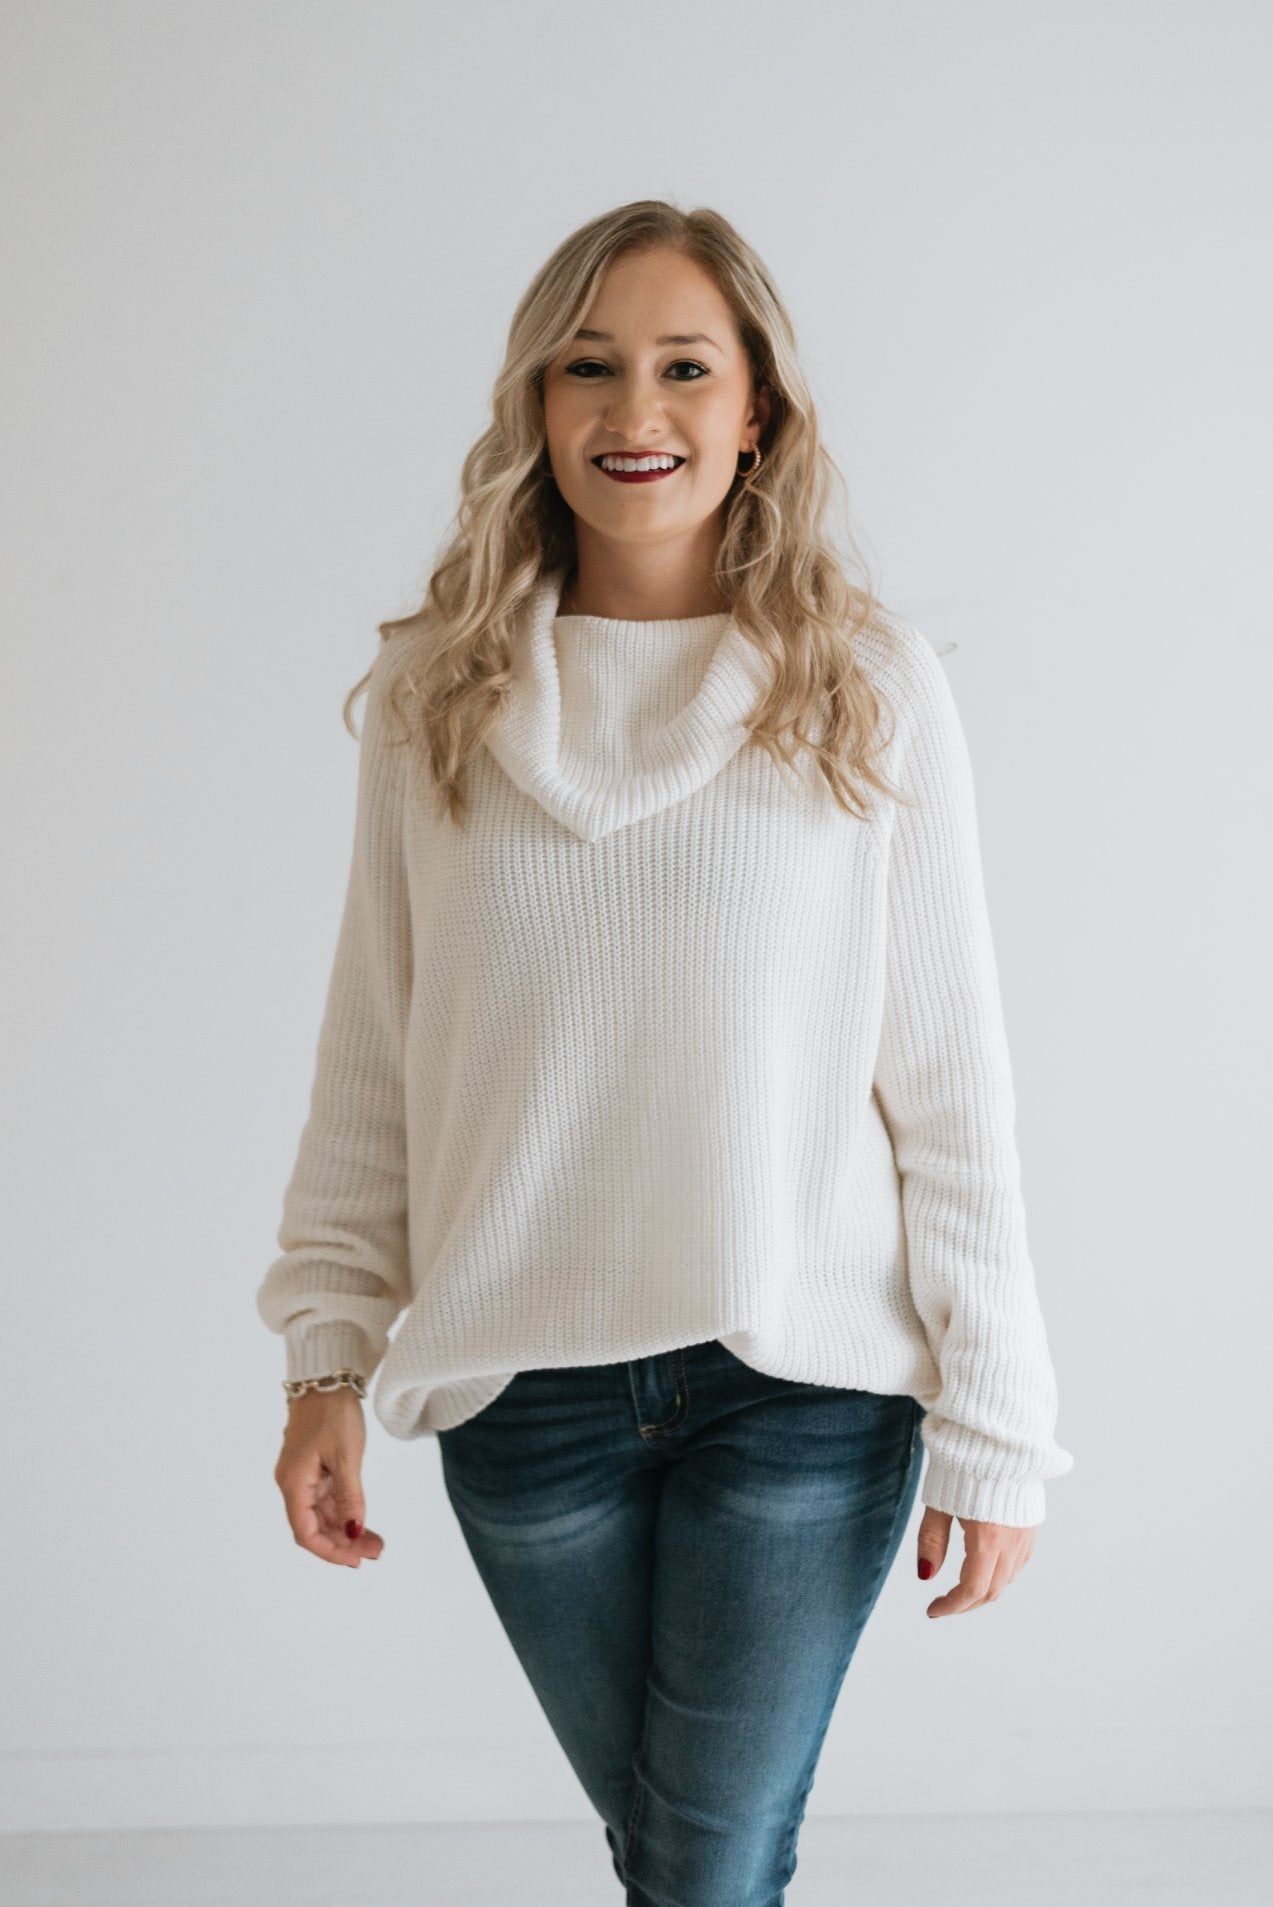 Cream Cowl Neck Sweater - The Bernice